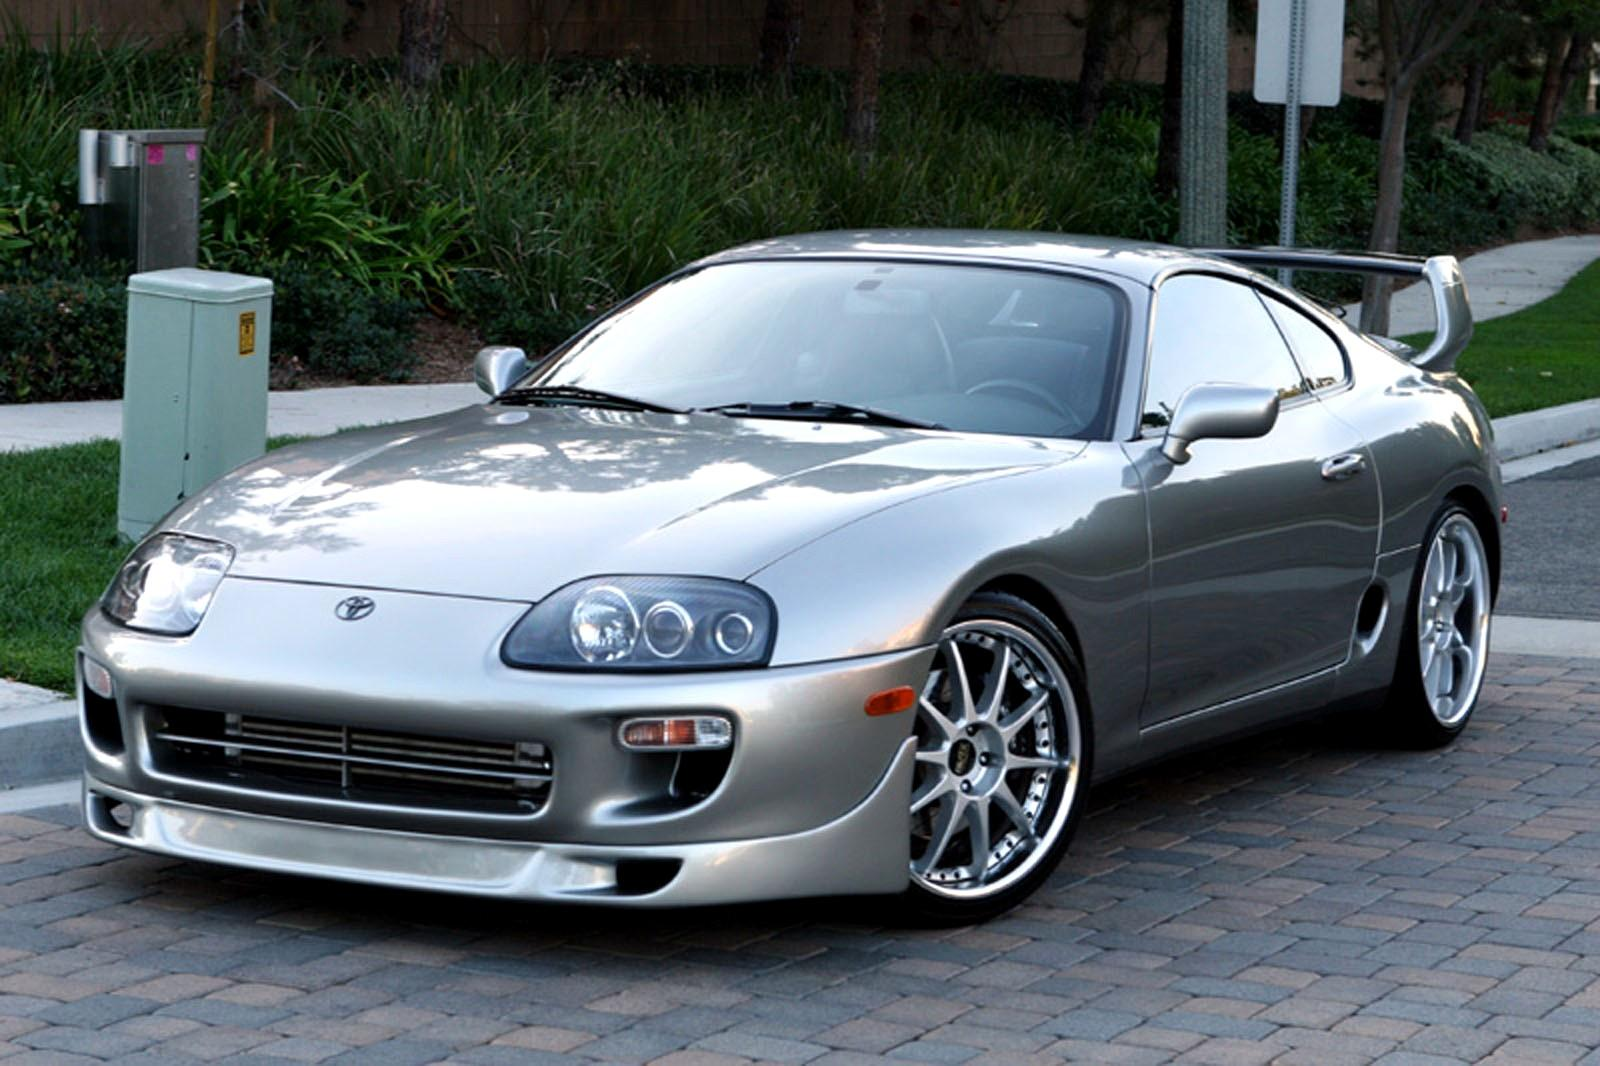 toyota supra wallpaper hd download. Black Bedroom Furniture Sets. Home Design Ideas